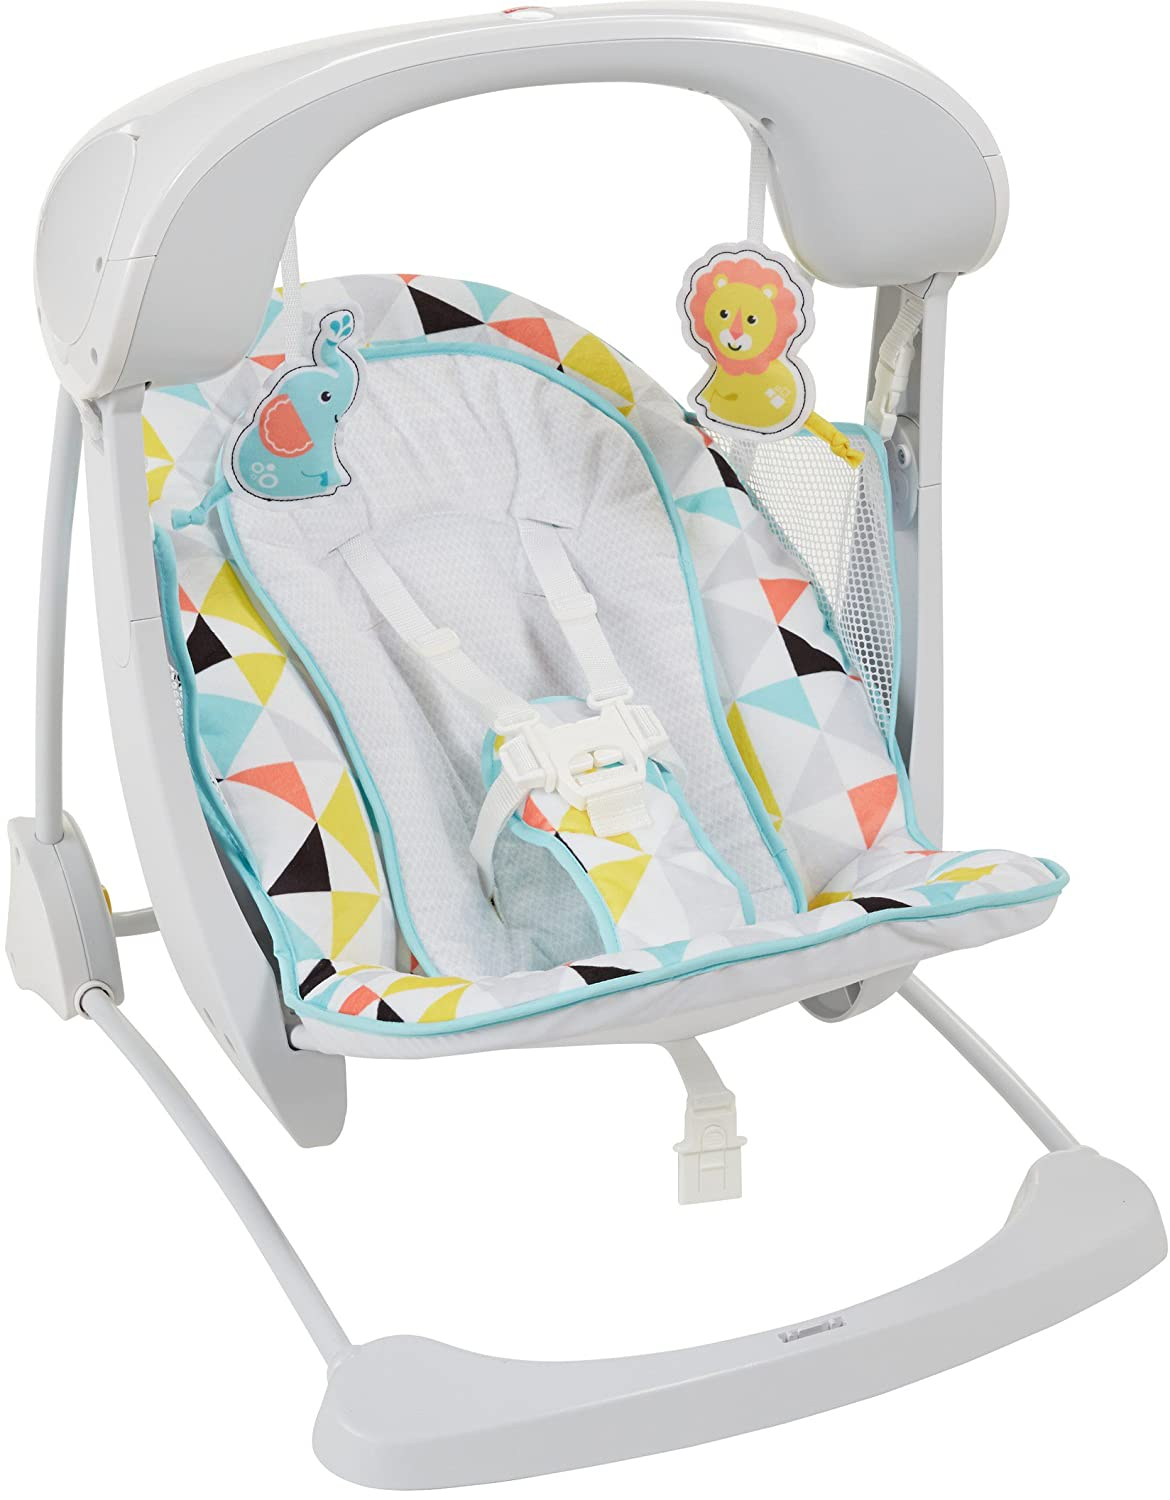 Fisher-Price Deluxe Take-Along Swing & Seat DYH31